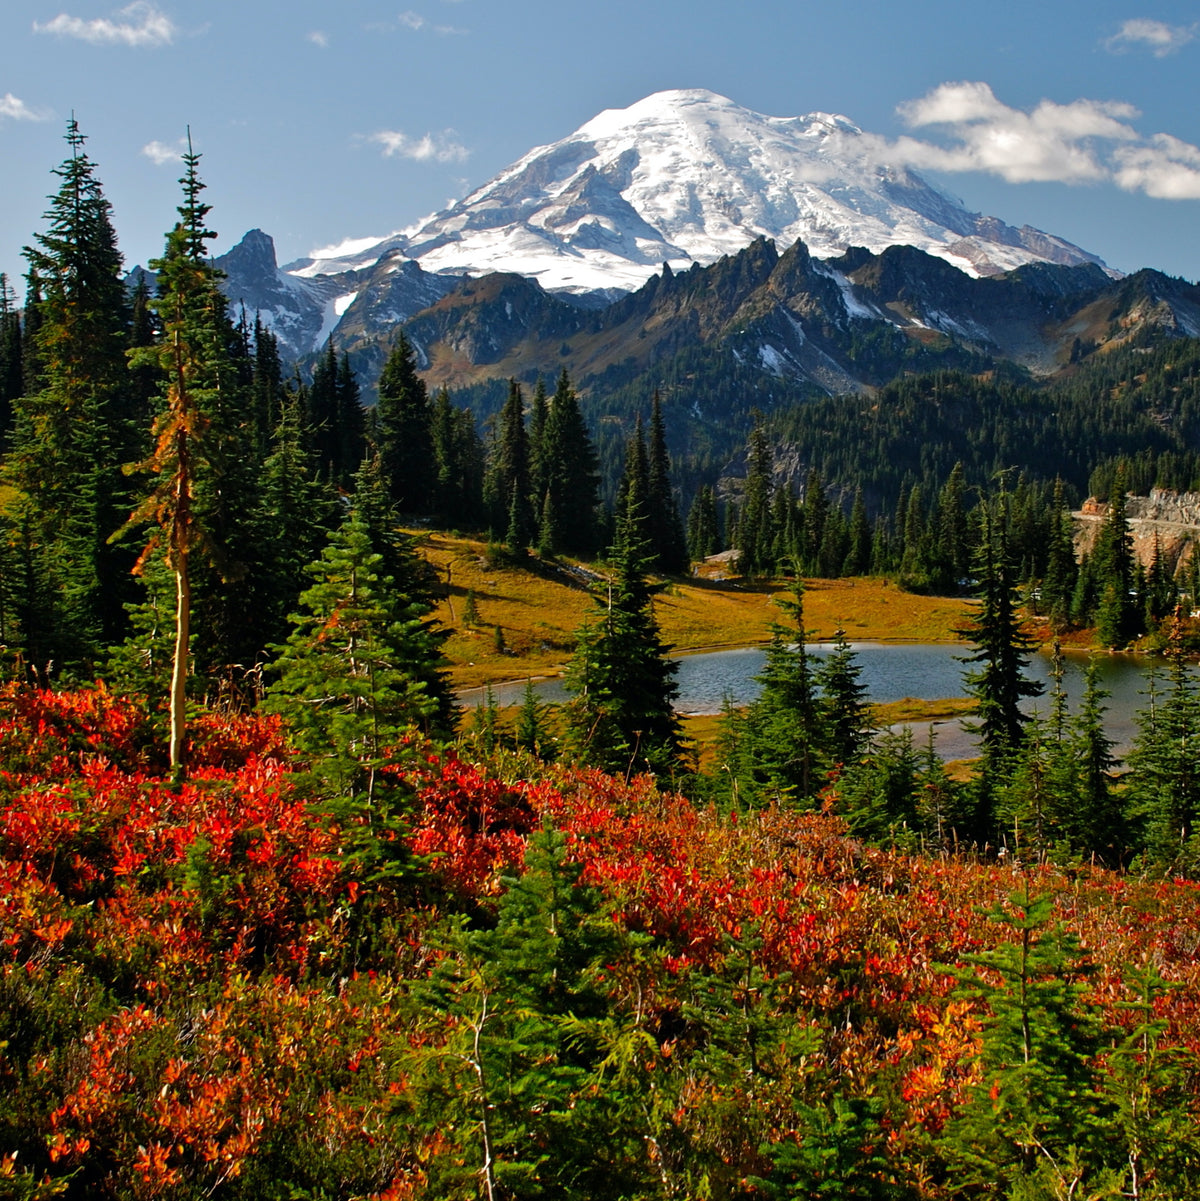 Quick Guide to Mount Rainier National Park